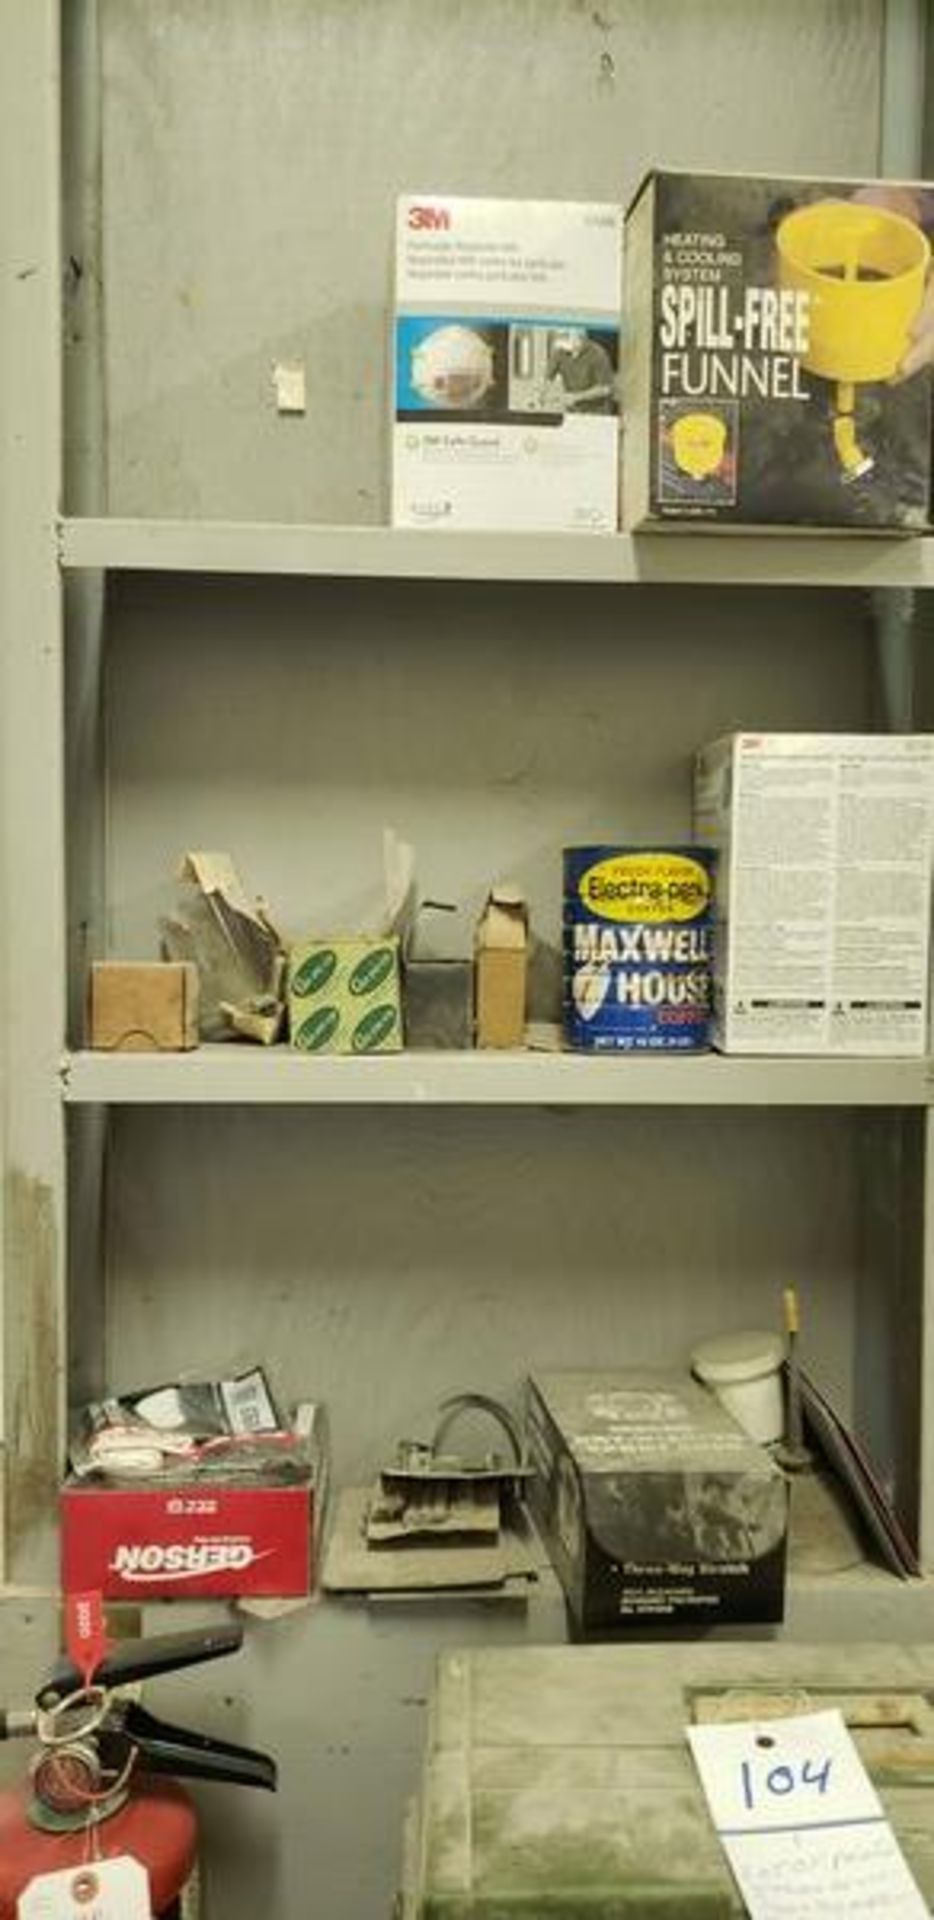 LOT OF PAINTING ITEMS ON LEFT TABLE, TOP AND BACK SHELF (TAGGED SPRAY GUNS AND OTHER TAGGED ITEMS AR - Image 2 of 12